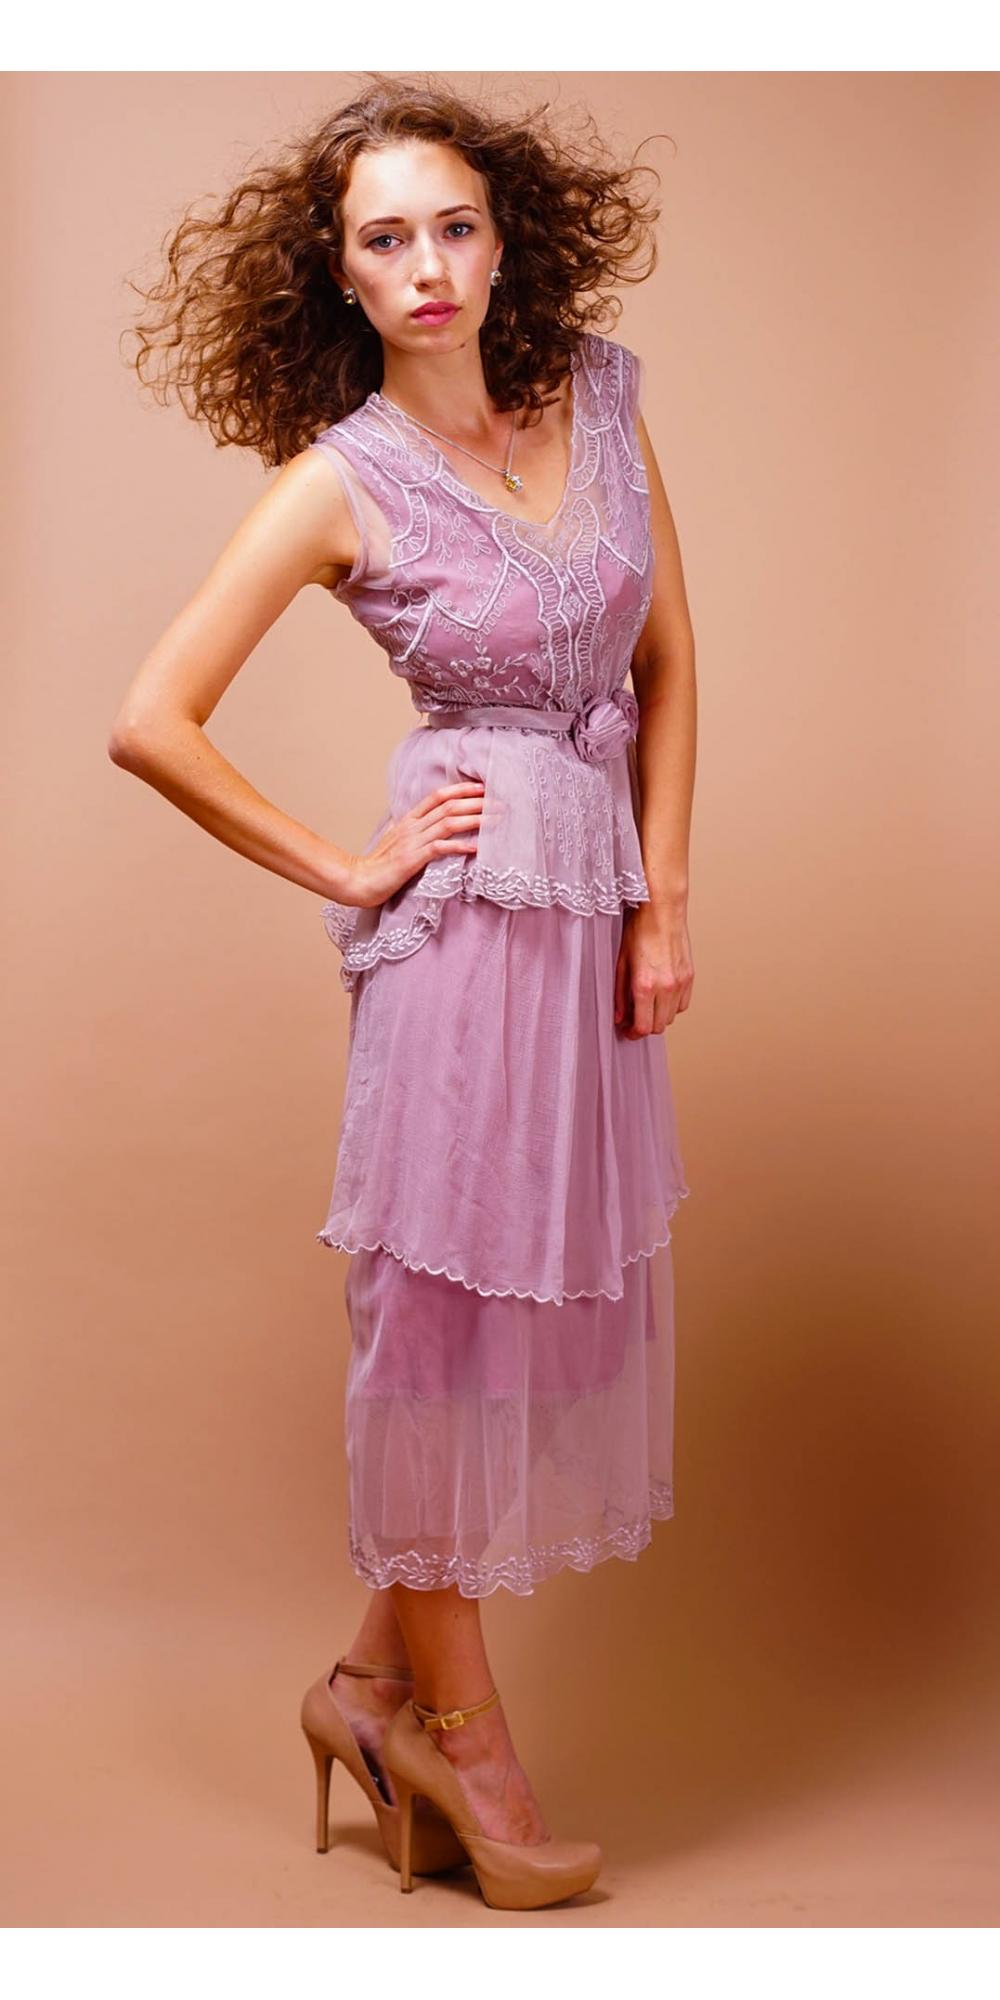 Tiered Vintage Style Tea Party Dress in Lavender-Rose by Nataya